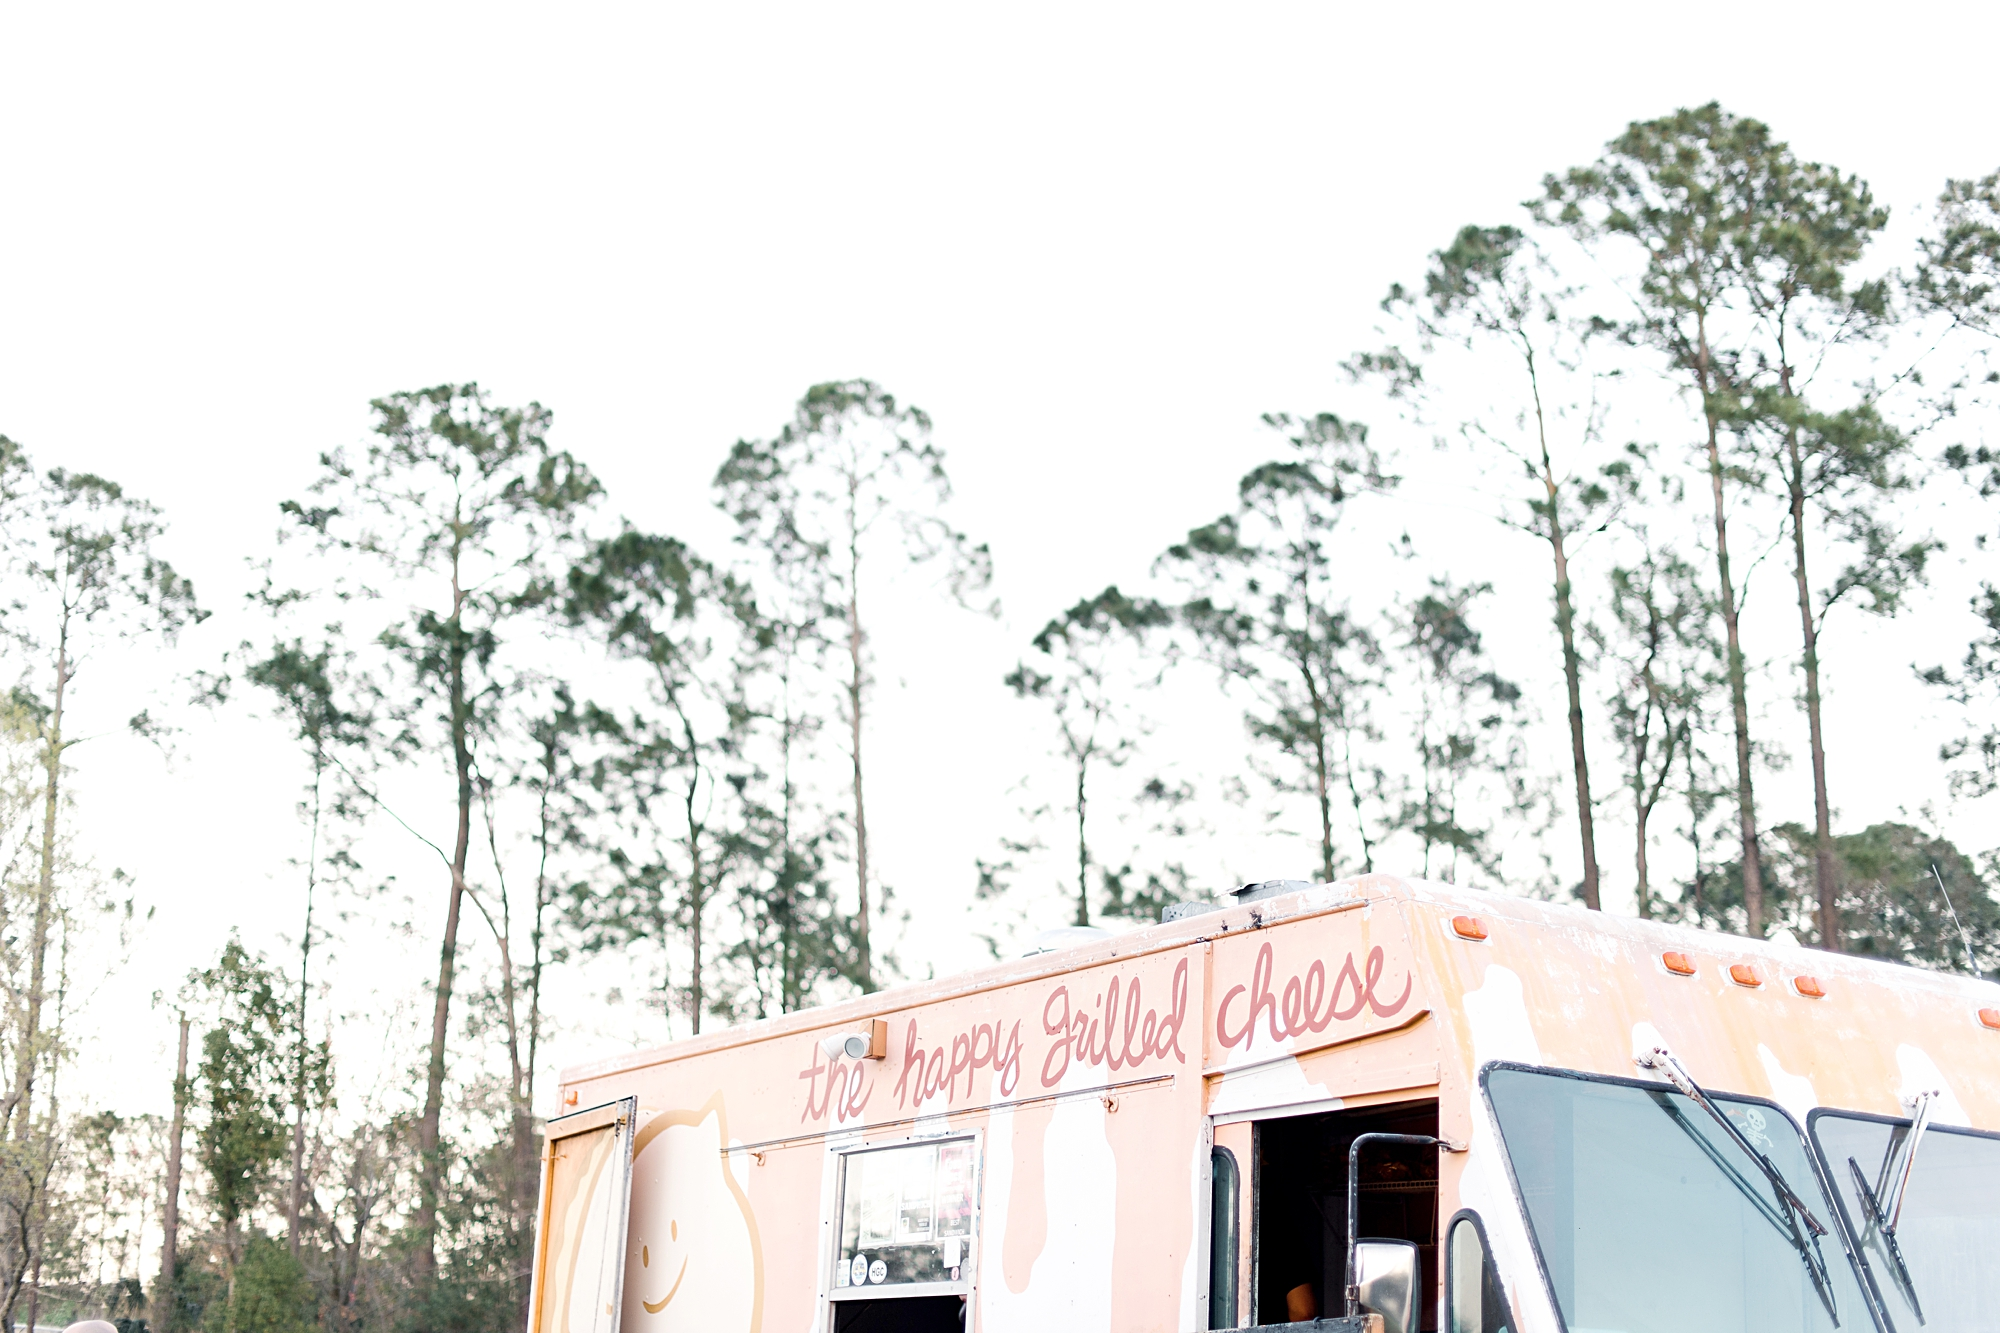 The Happy Grilled Cheese food truck wedding reception